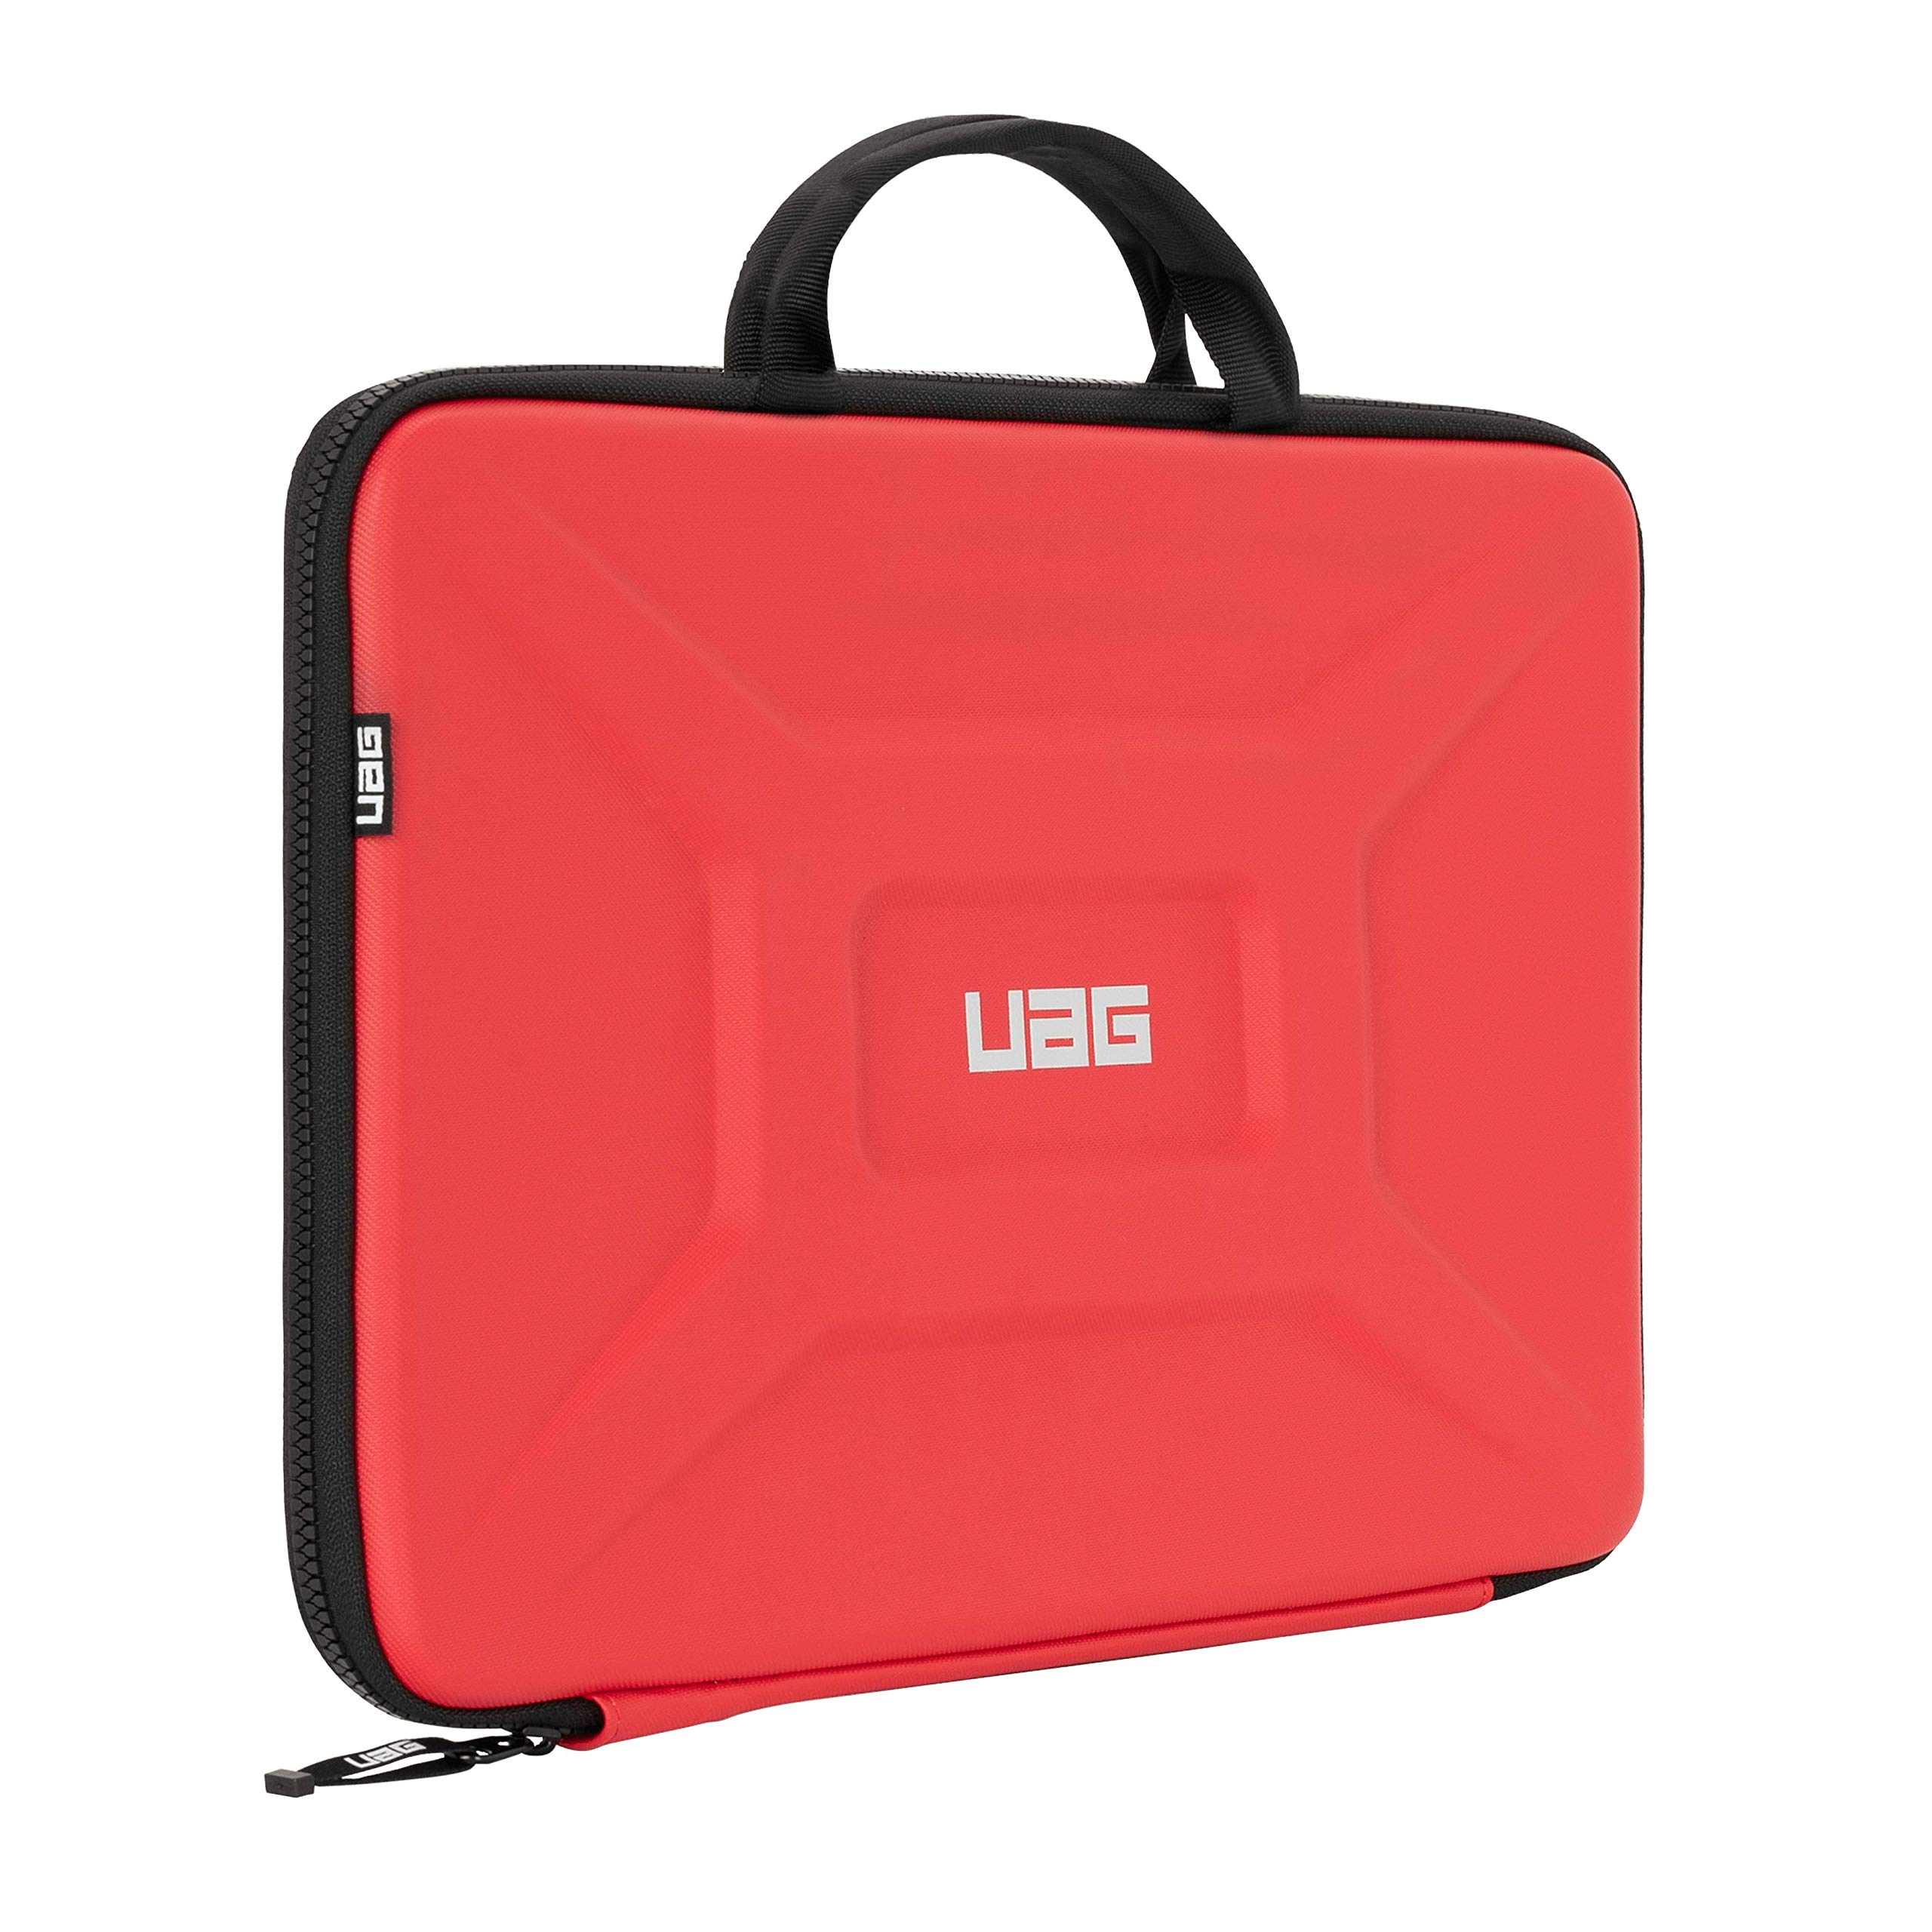 """URBAN ARMOR GEAR UAG Large Sleeve with Carrying Handle for 15"""" Devices Magma Rugged Tactile Grip Weatherproof Protective Slim Secure Laptop/Tablet Sleeve"""